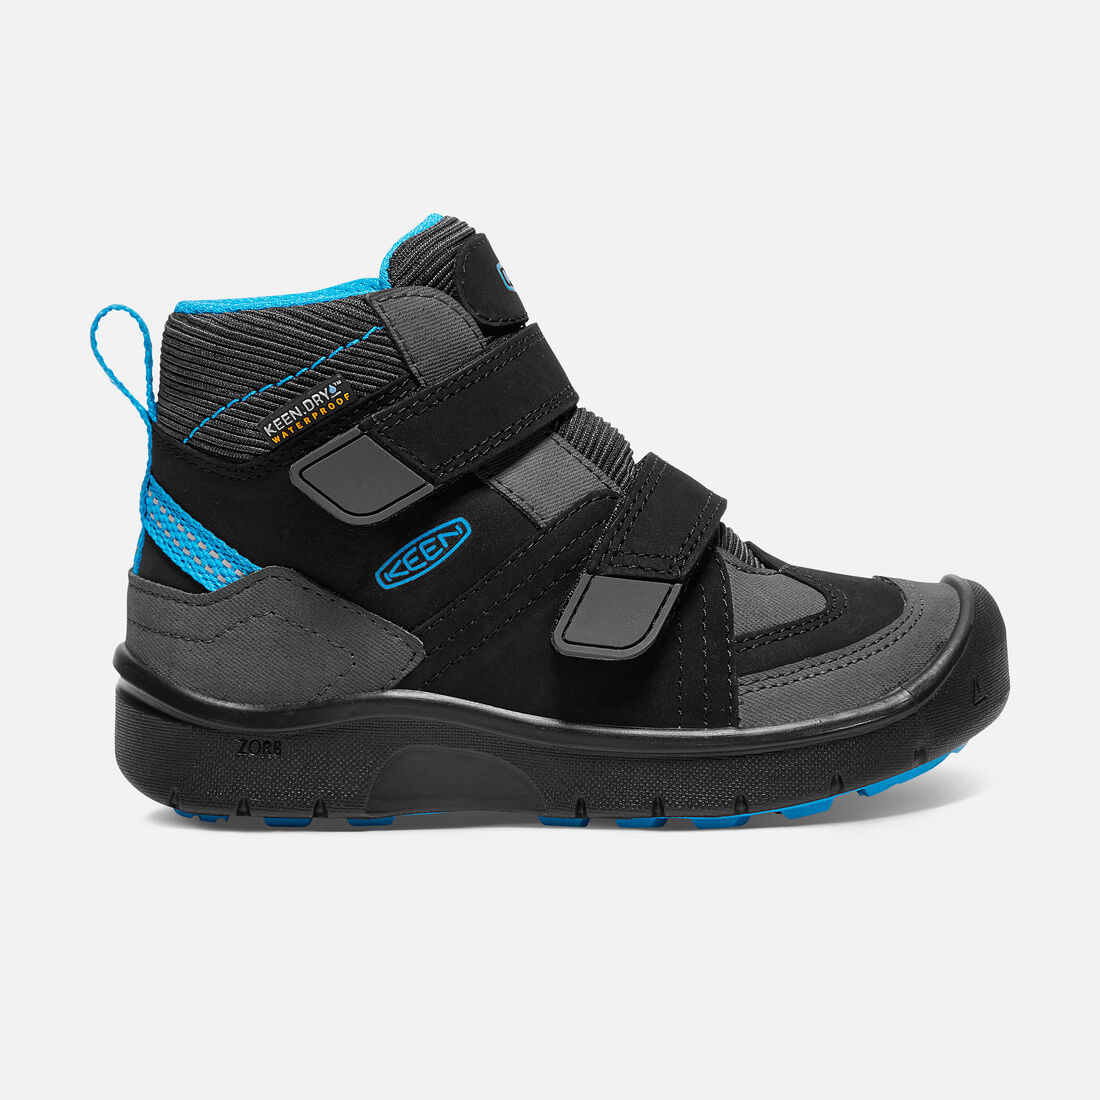 Little Kids' HIKEPORT Strap Waterproof Mid in Black/Blue Jewel - large view.